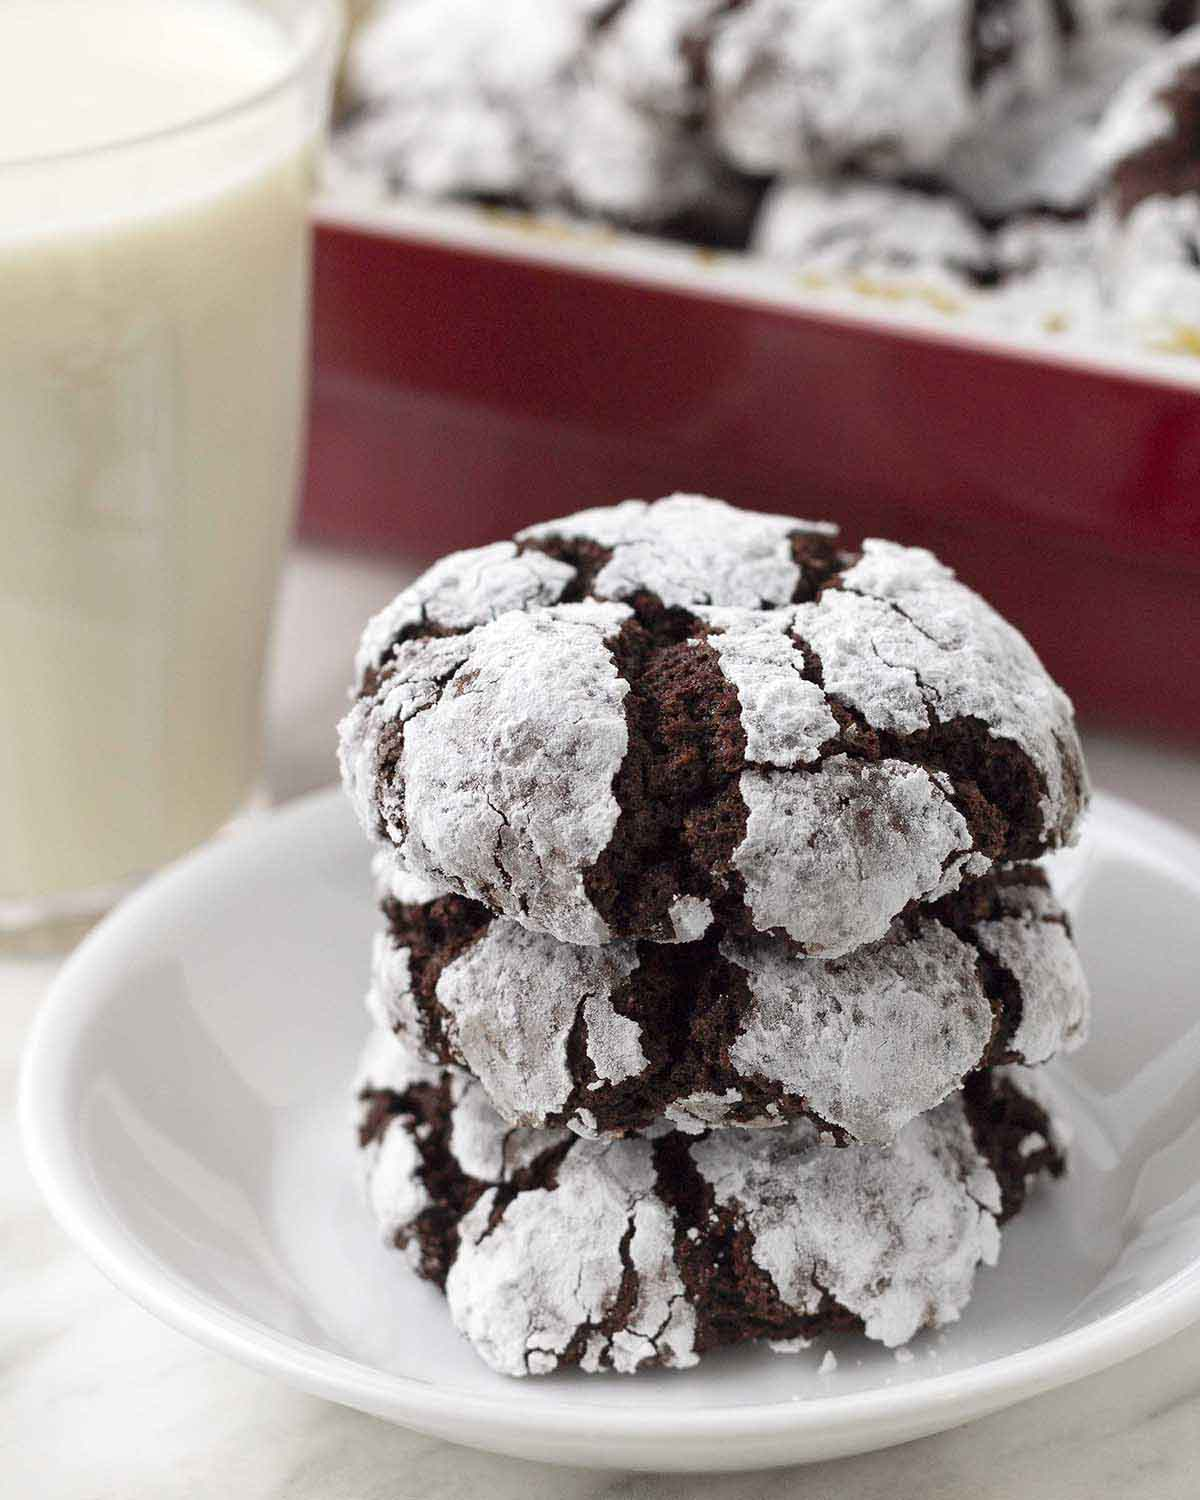 Gluten-free chocolate crackle cookies on a small white plate, more cookies and a glass of milk sit behind the plate.